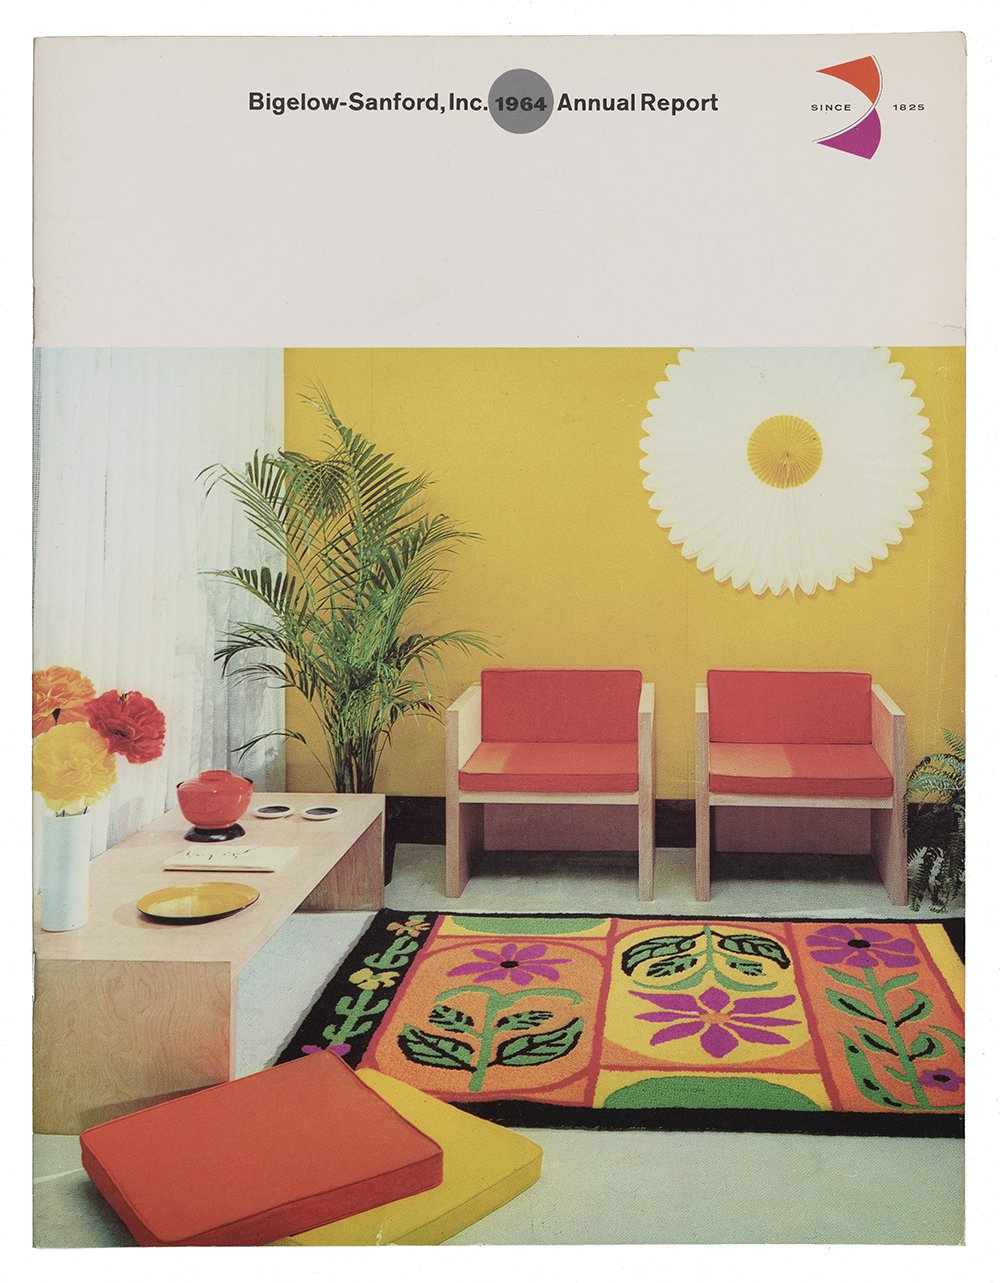 Cover of corporate report featuring a photograph of a brightly colored waiting room with a yellow wall; large palm plant; two red chair; a low table with flowers and other objects; two orange and yellow square cushions on the floor.